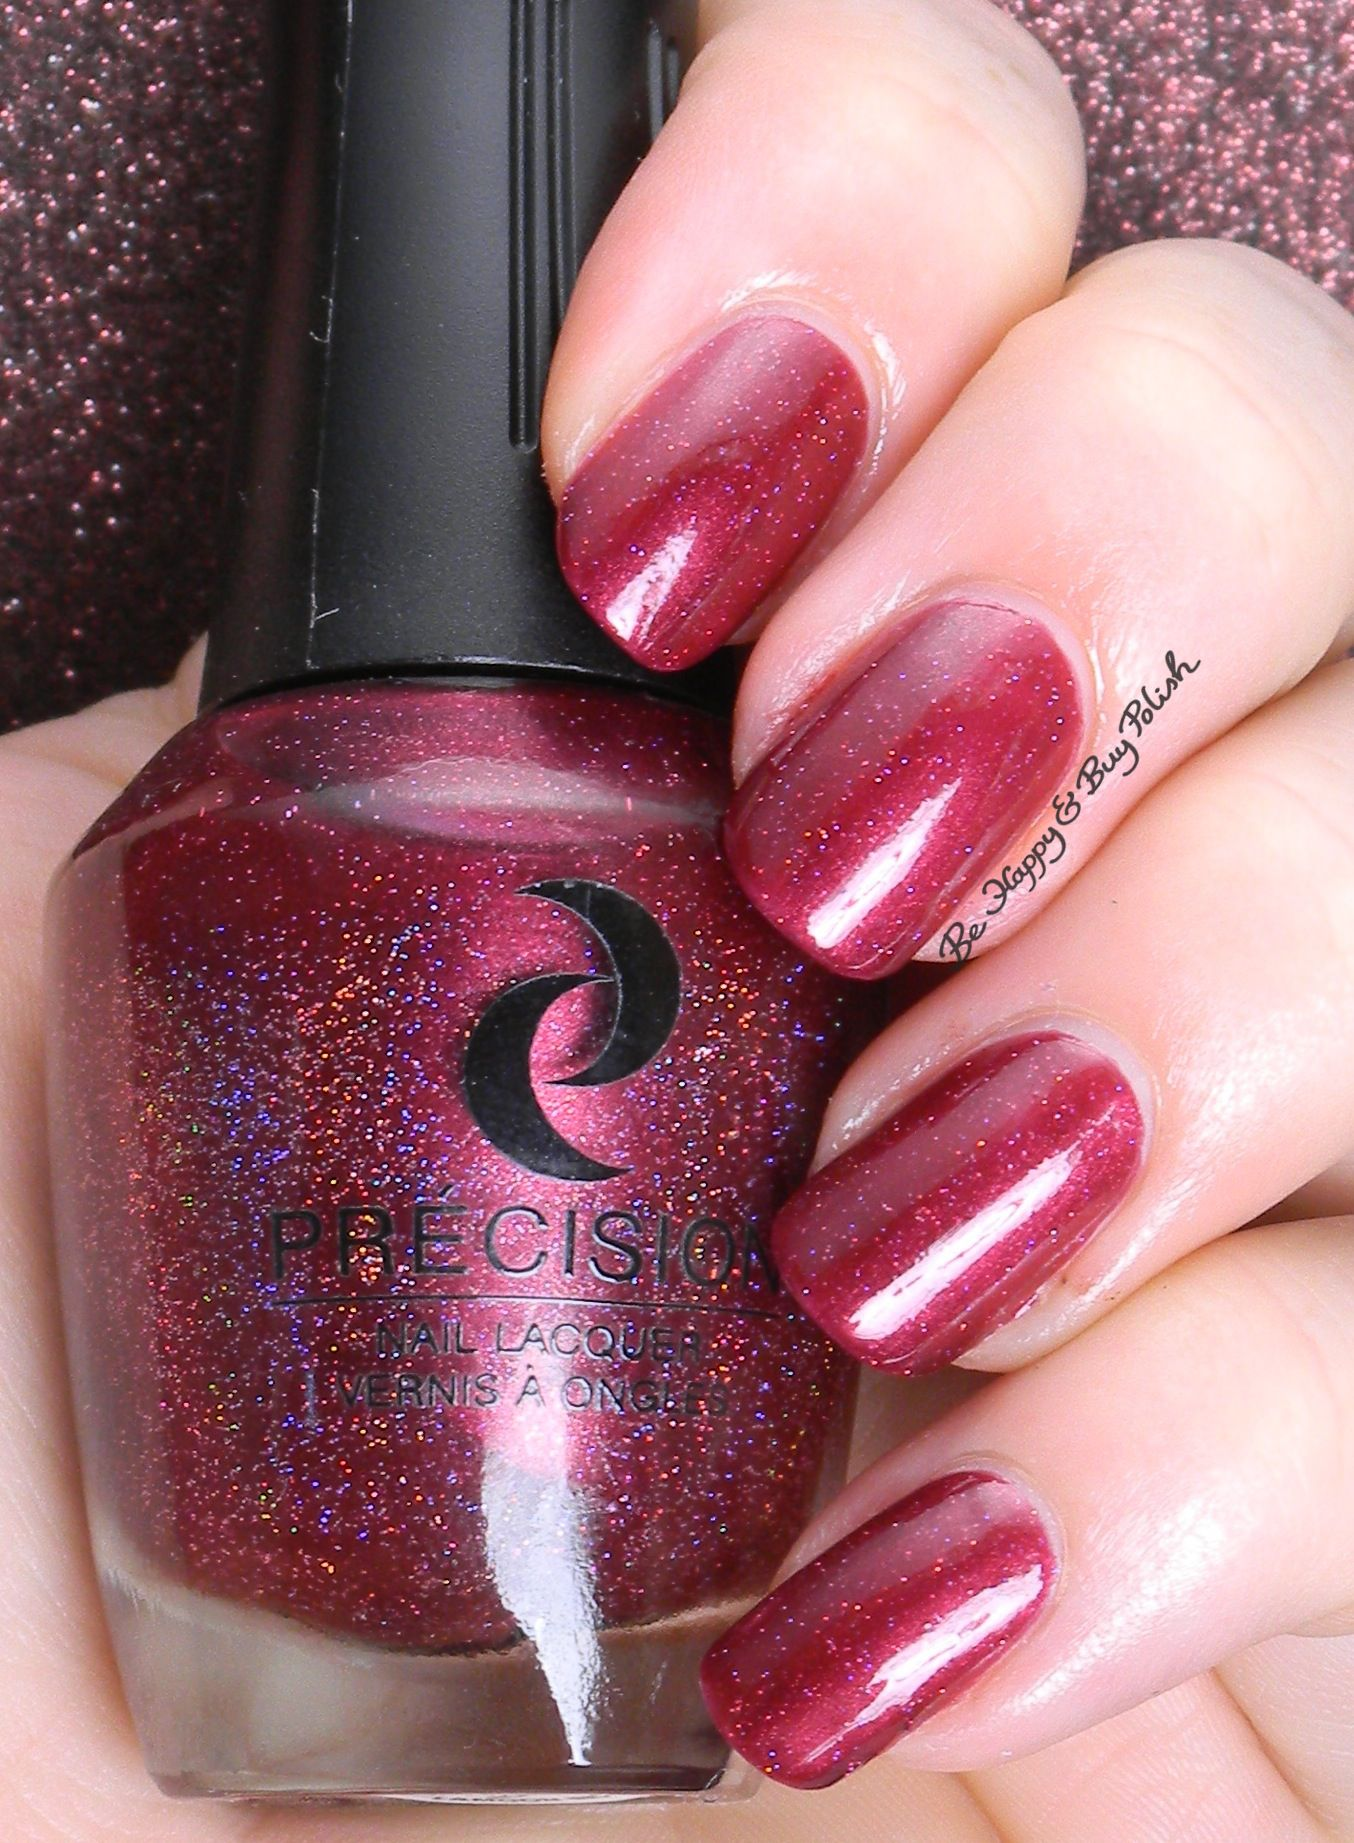 Precision Nail Lacquer Shine Wine N Dine Be Hy And Polish